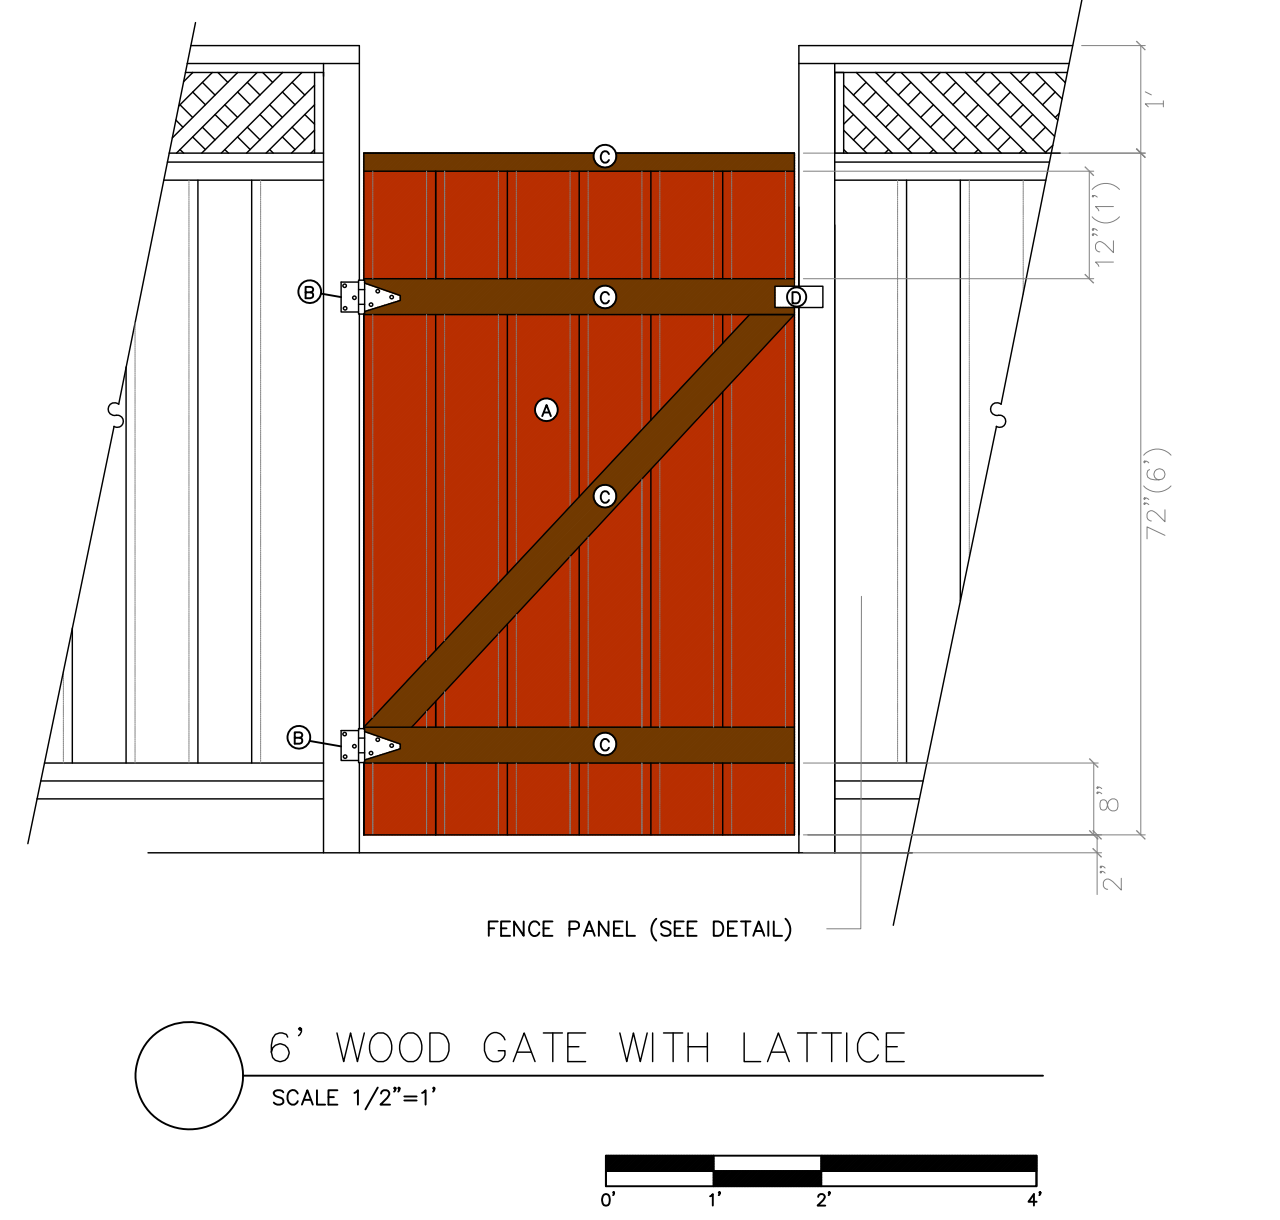 6' wood gate with lattice